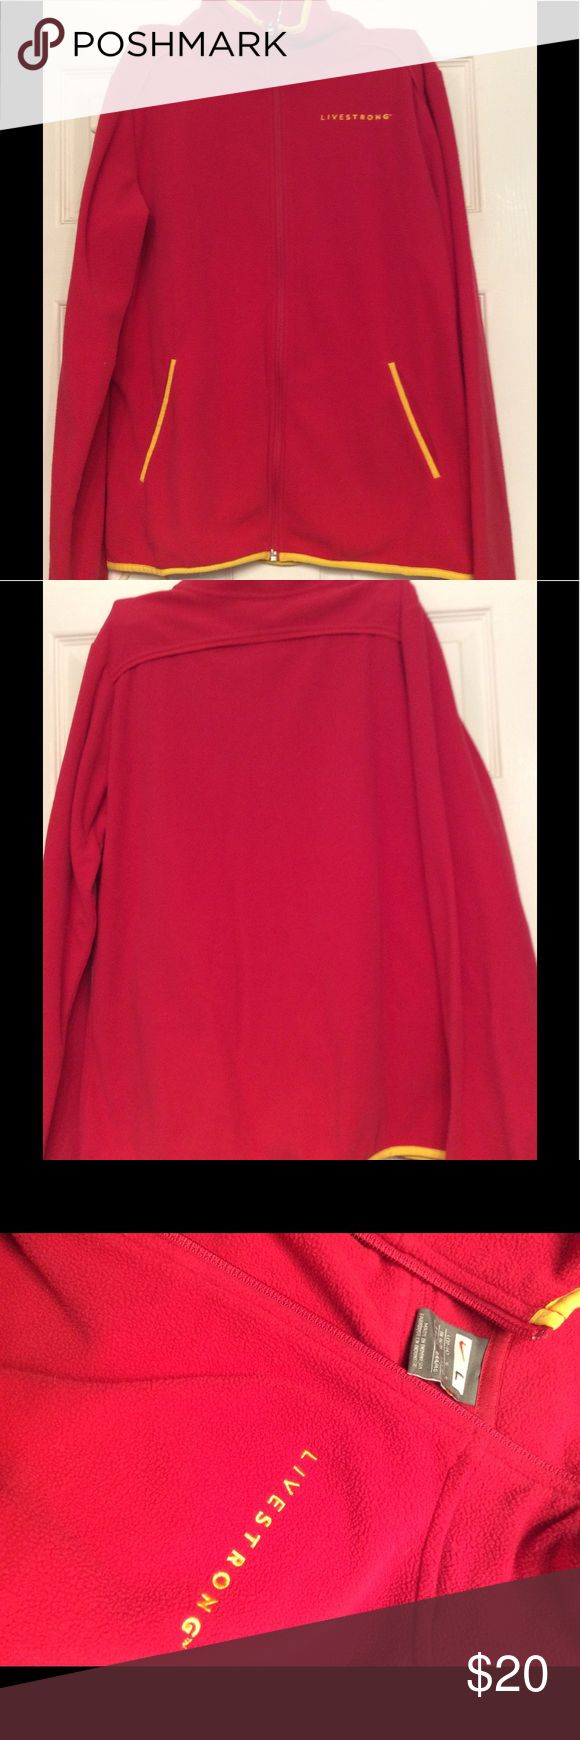 Nike Livestrong Fleece Jacket, Size Large Nike Livestrong Fleece Jacket, Size Large, red with yellow trim, in good condition. Nike Sweaters